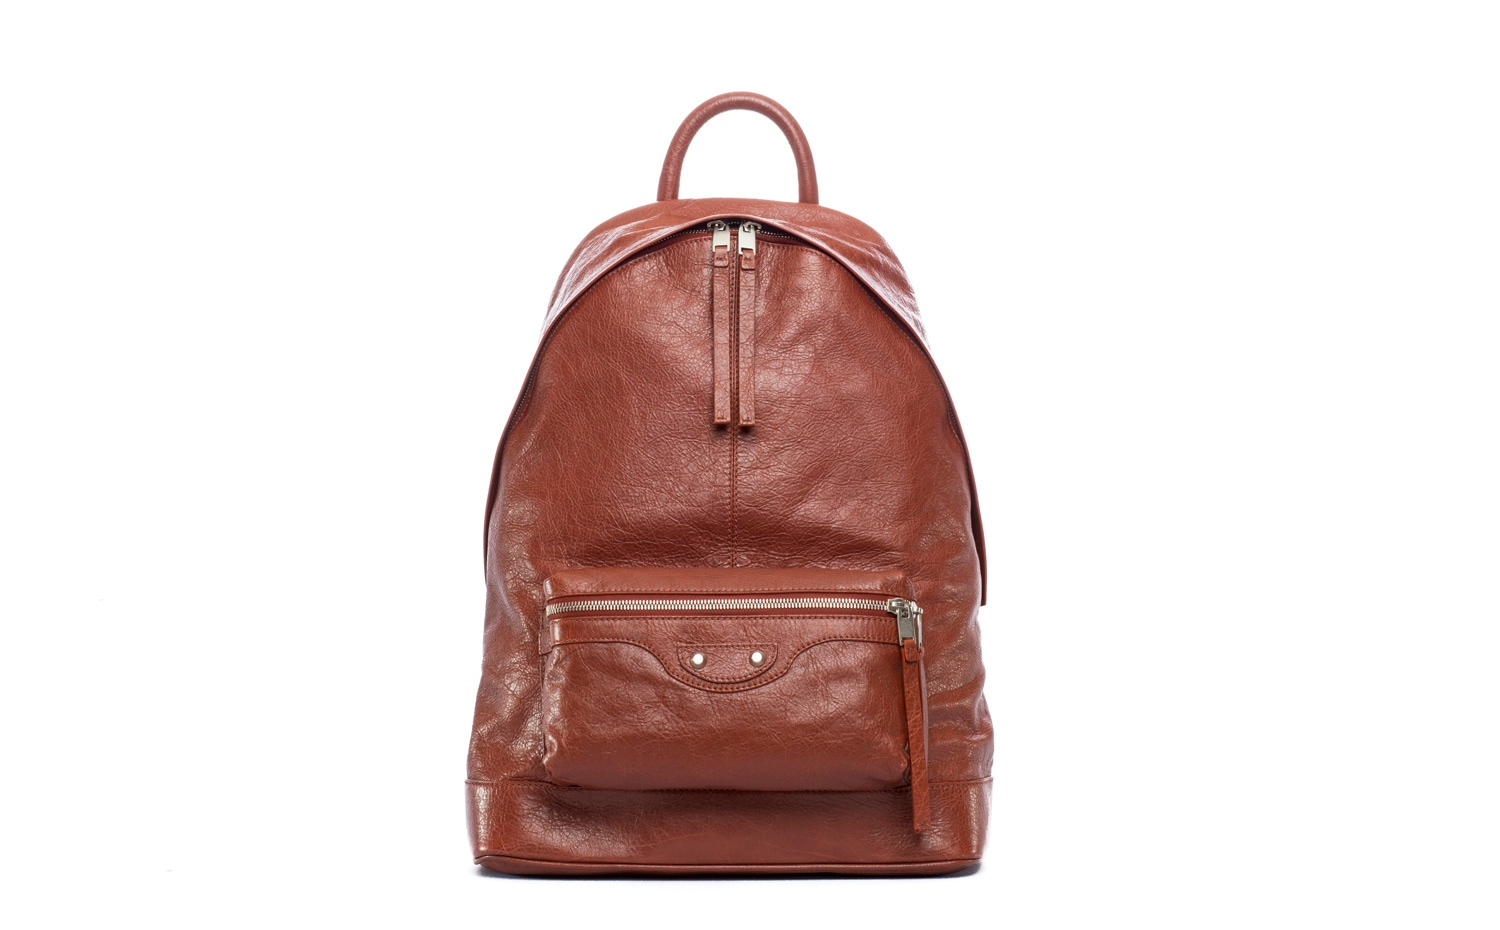 Balenciaga: Classic backpack in Rouge Rouill